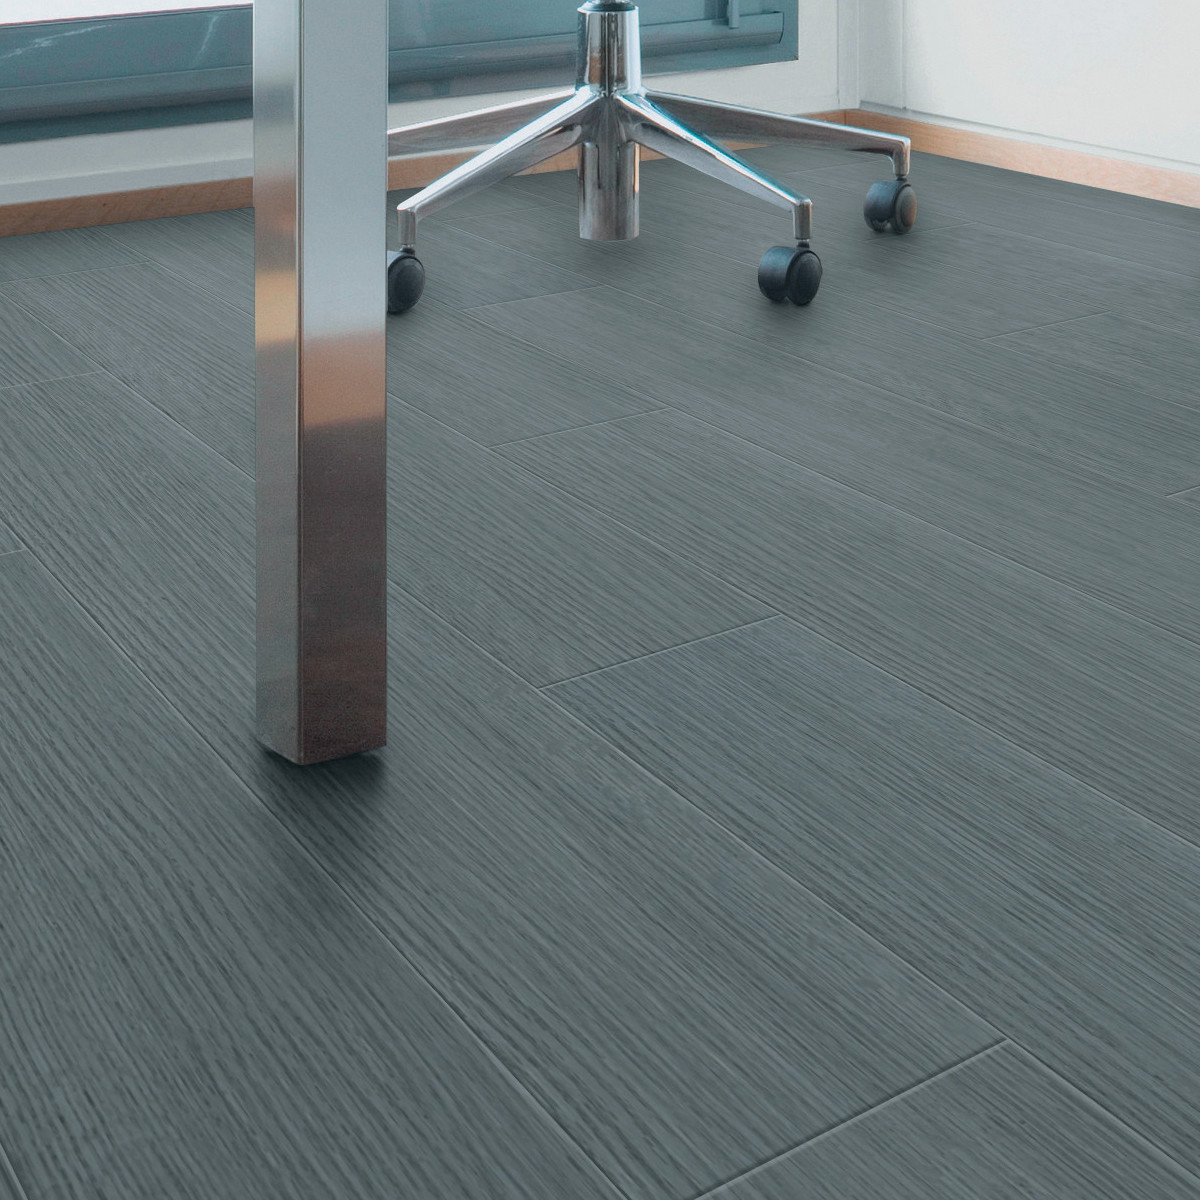 Pavimento in pvc leroy merlin parquet leroy merlin for Piastrelle in pvc adesive